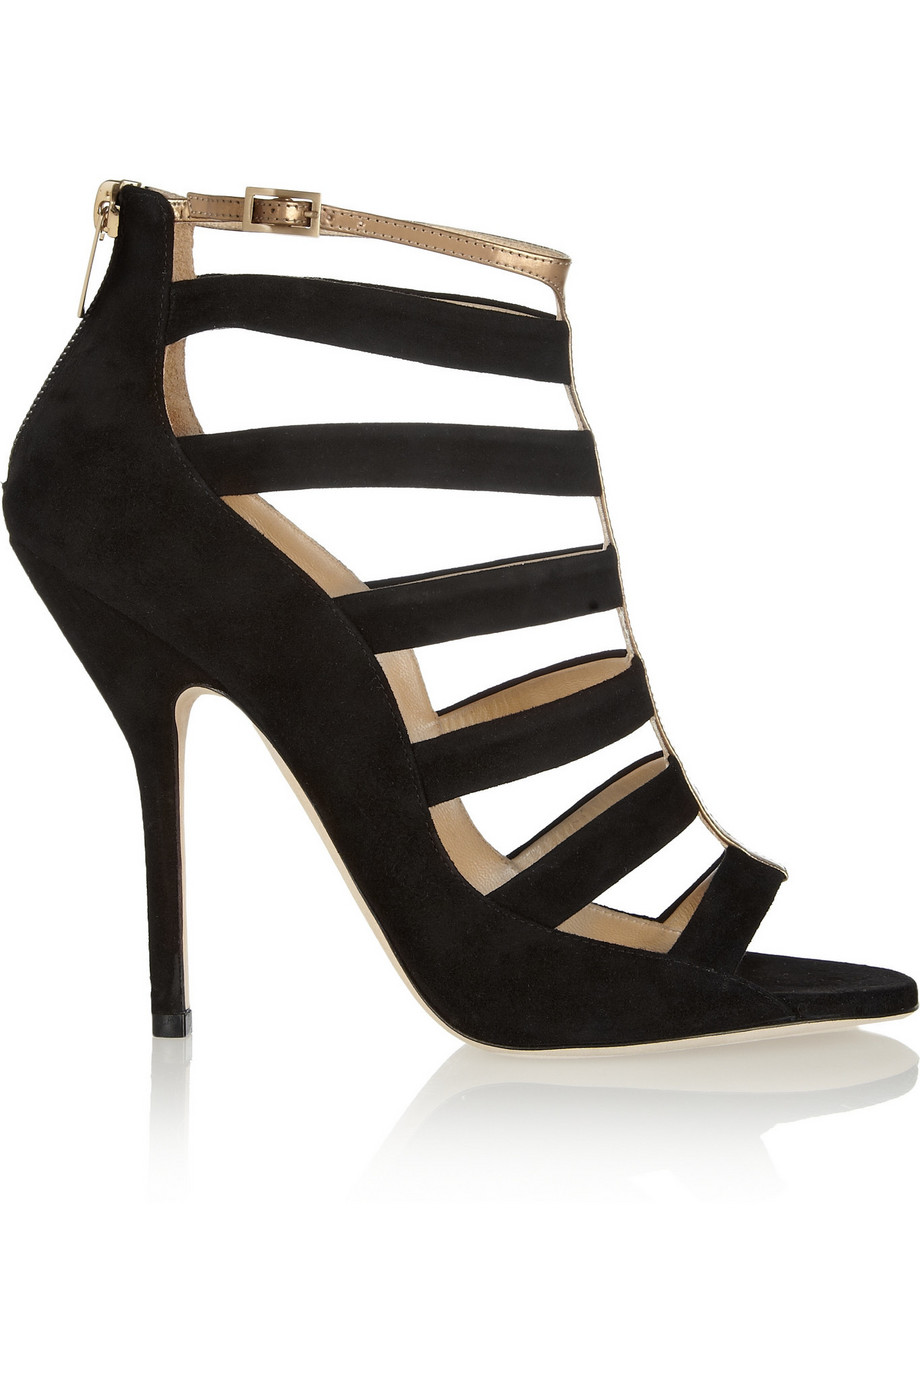 31ee3e0c324b Jimmy Choo Fathom cutout suede and metallic leather sandals at  Net-A-Porter.com